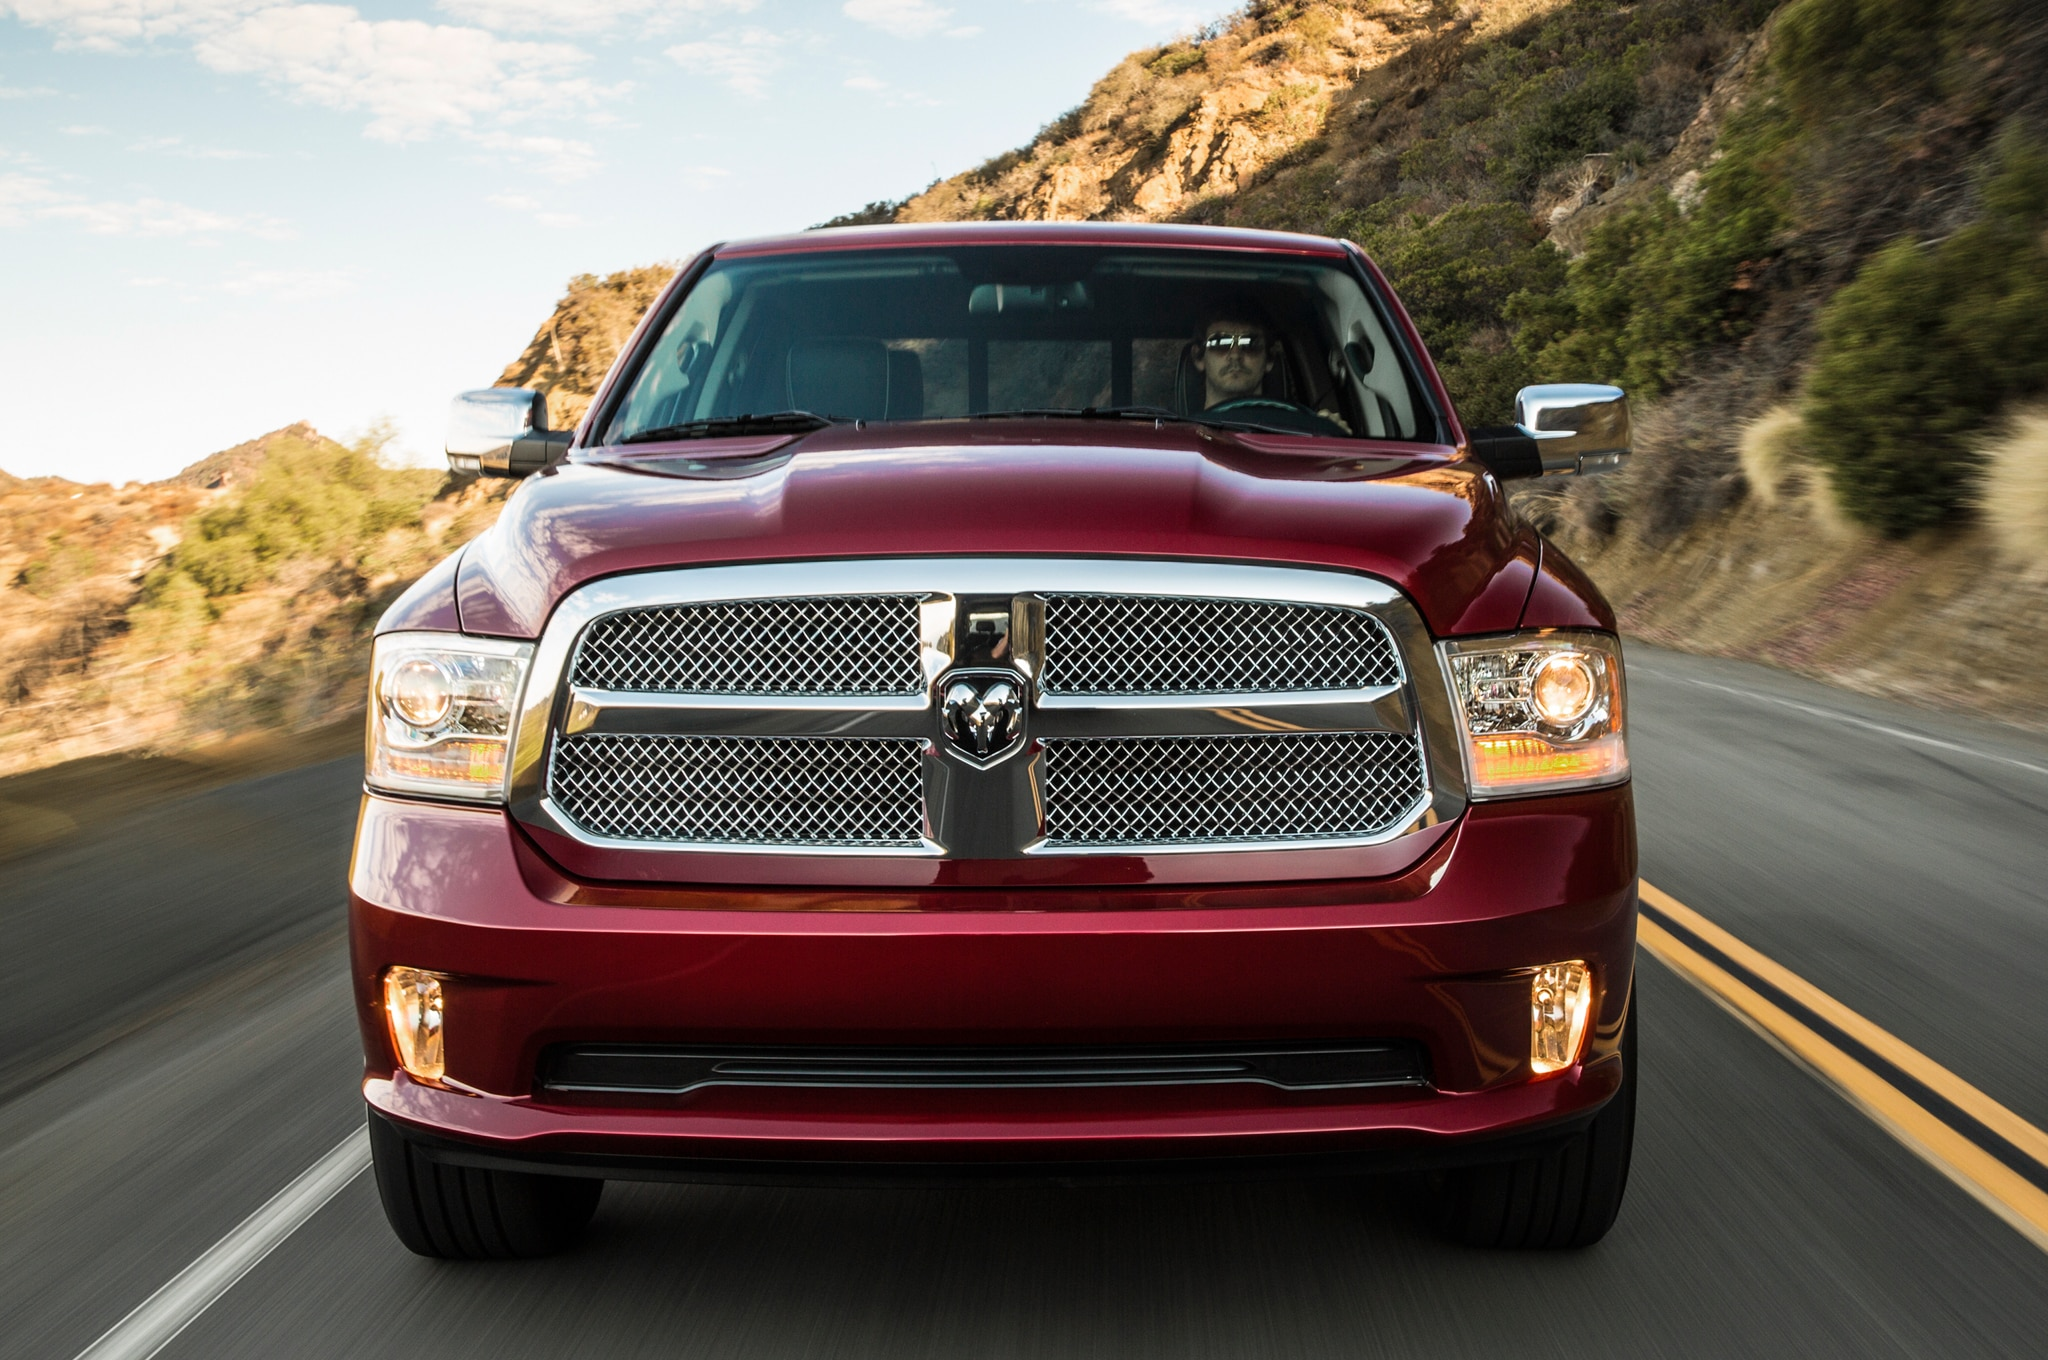 2014 Dodge 1500 2014 Ram 1500 Ecodiesel Epa Rated At 28 Mpg Highway